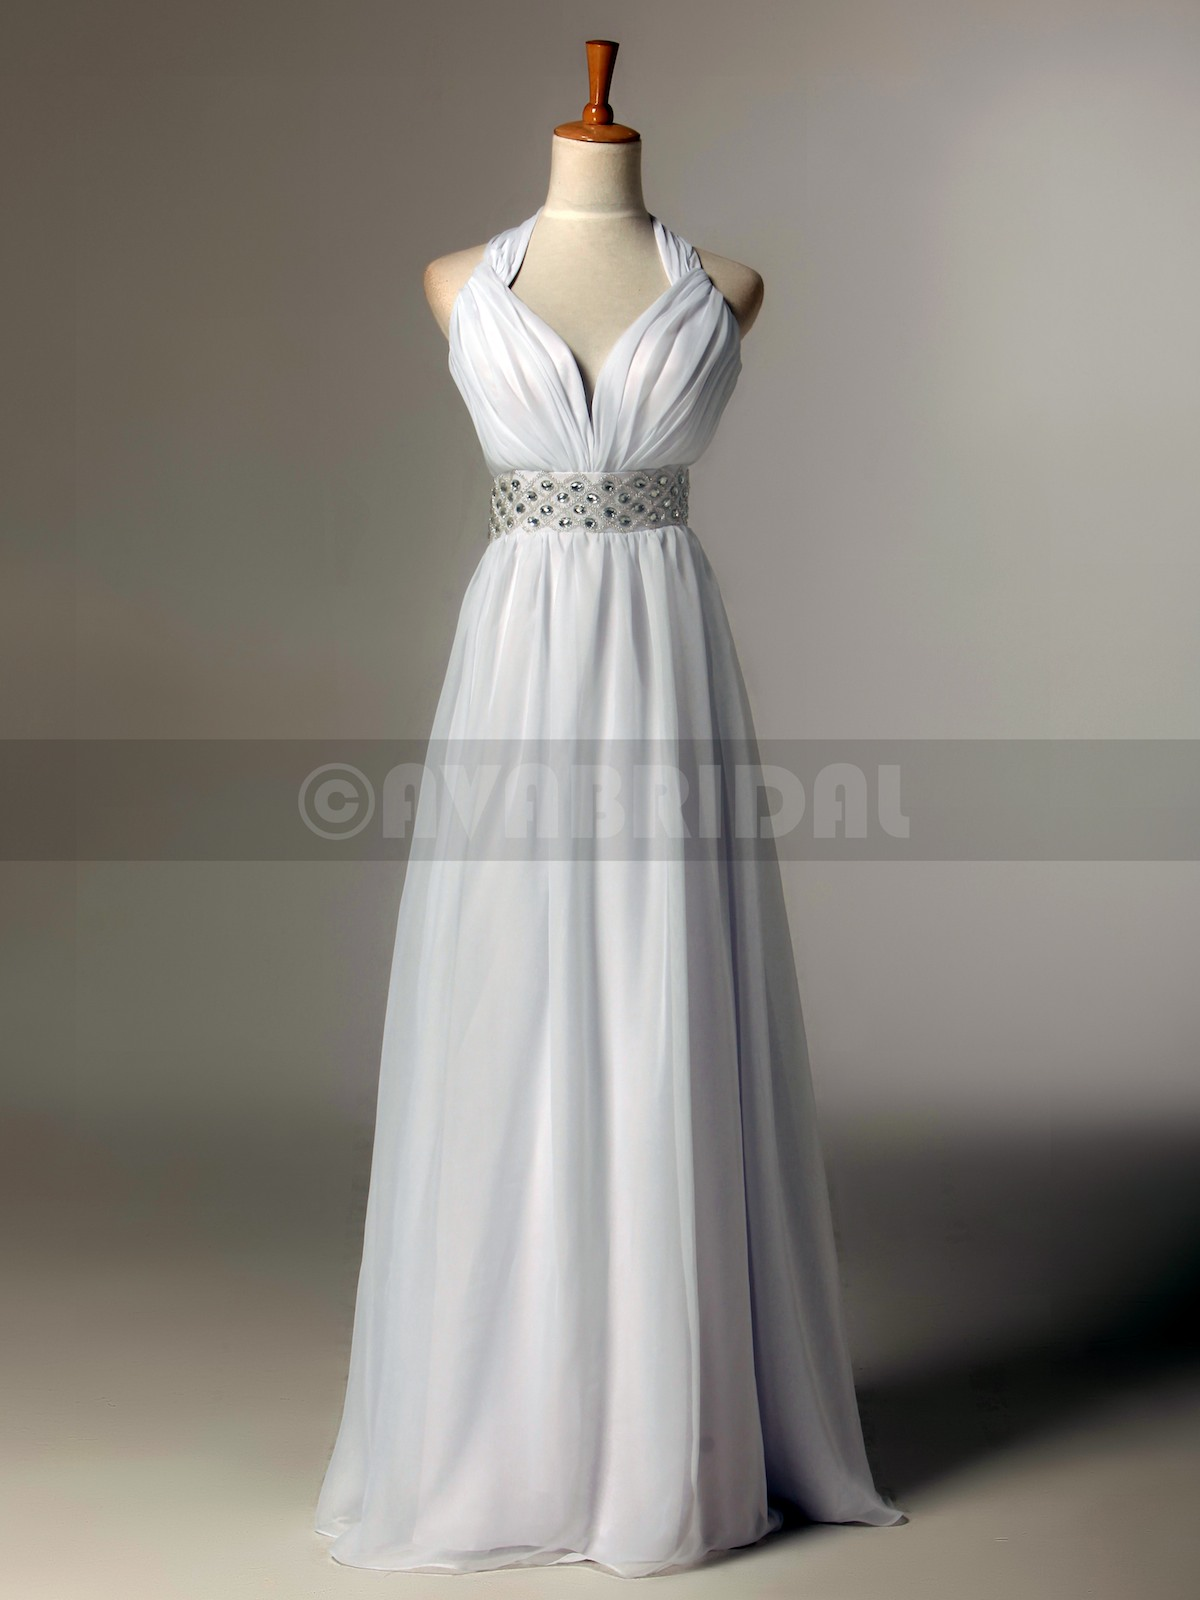 Column Halter Neck Natural Waist Chiffon Bridesmaids Dress (B428)-Front